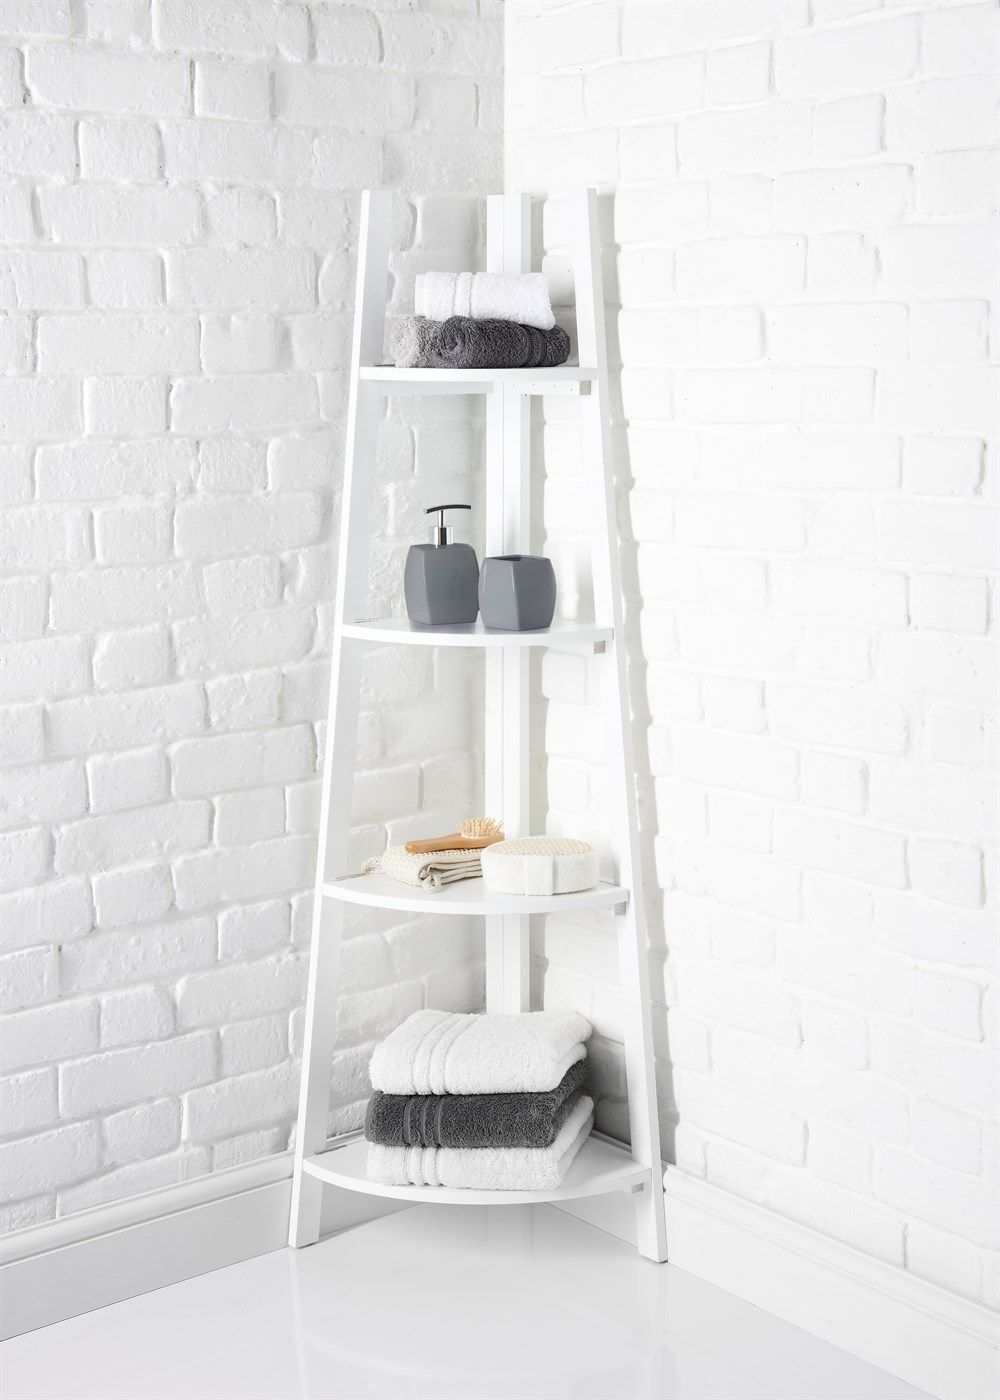 4 Tier Corner Shelf Unit 136cm X 53cm X 34cm White Bathroom Corner Unit Corner Shelf Unit Corner Shelves